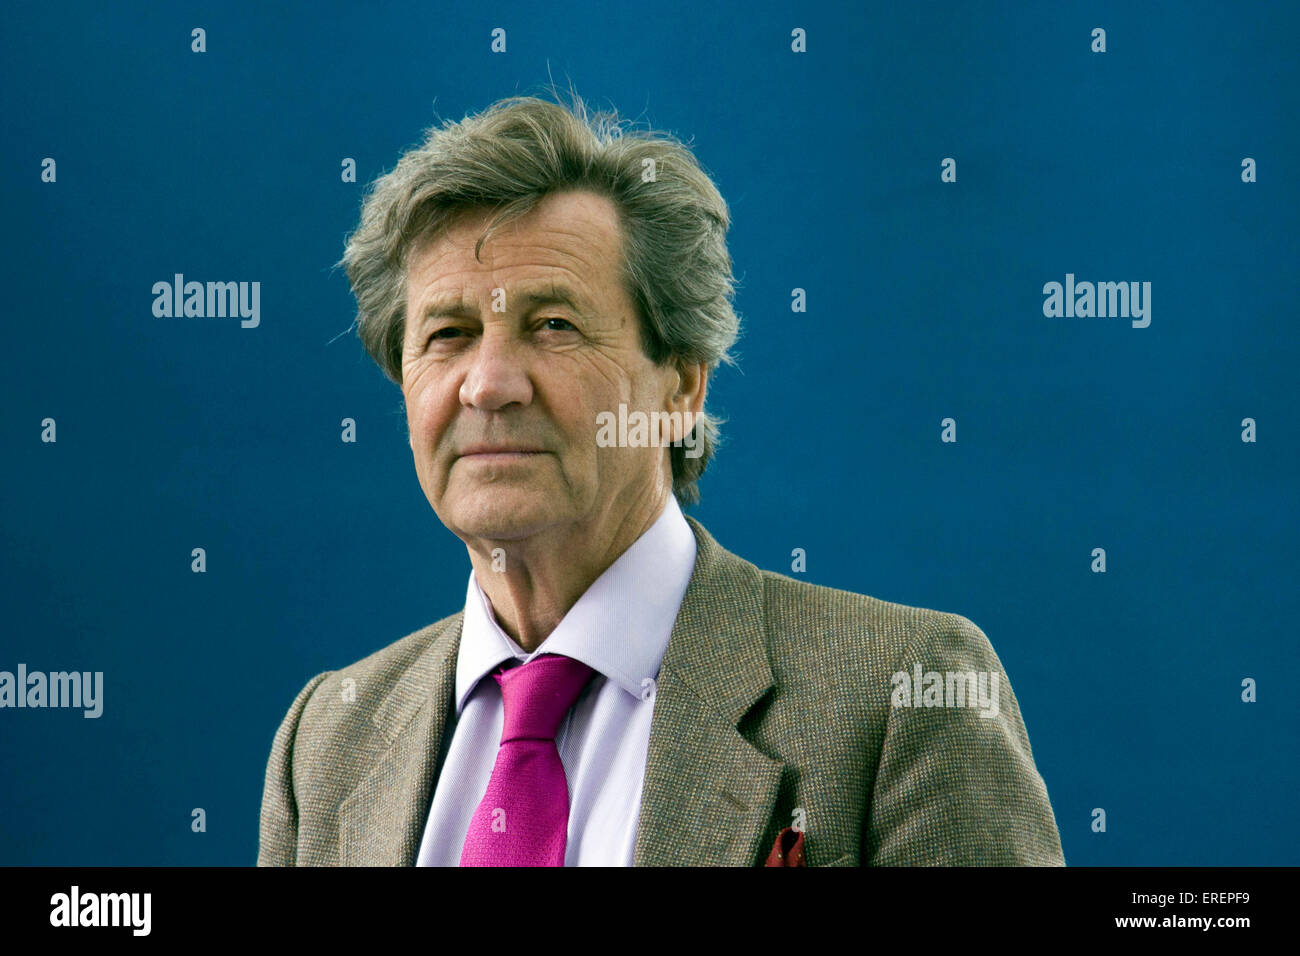 Melvyn Bragg, English author, broadcaster, and media personality talked about his book the 'Final Cut' at - Stock Image